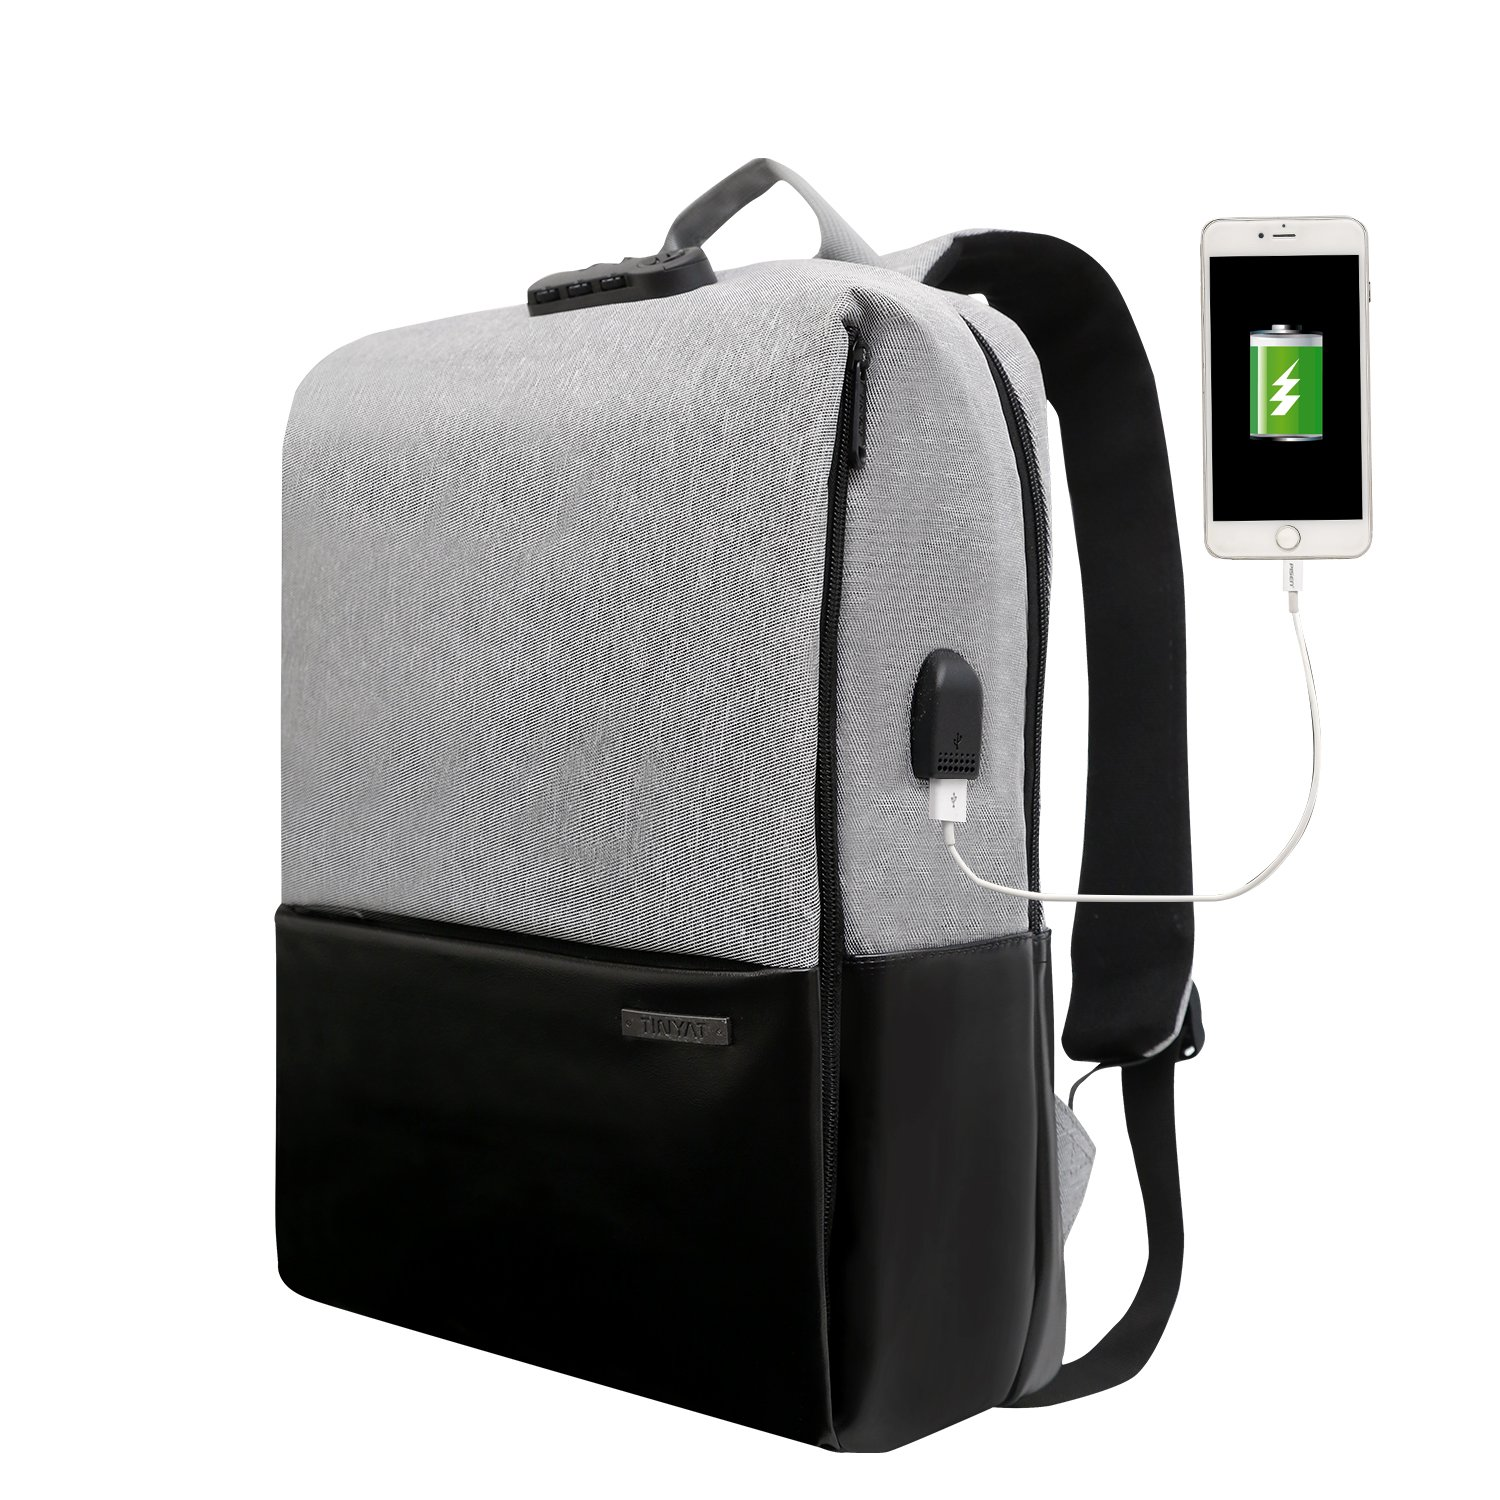 Travel Anti Theft Laptop Backpack for Women & Men, Water Resistant College School Bookbag, Slim Business Backpack w/USB Charging Port, Fits 17 inch Laptop .(Grey)